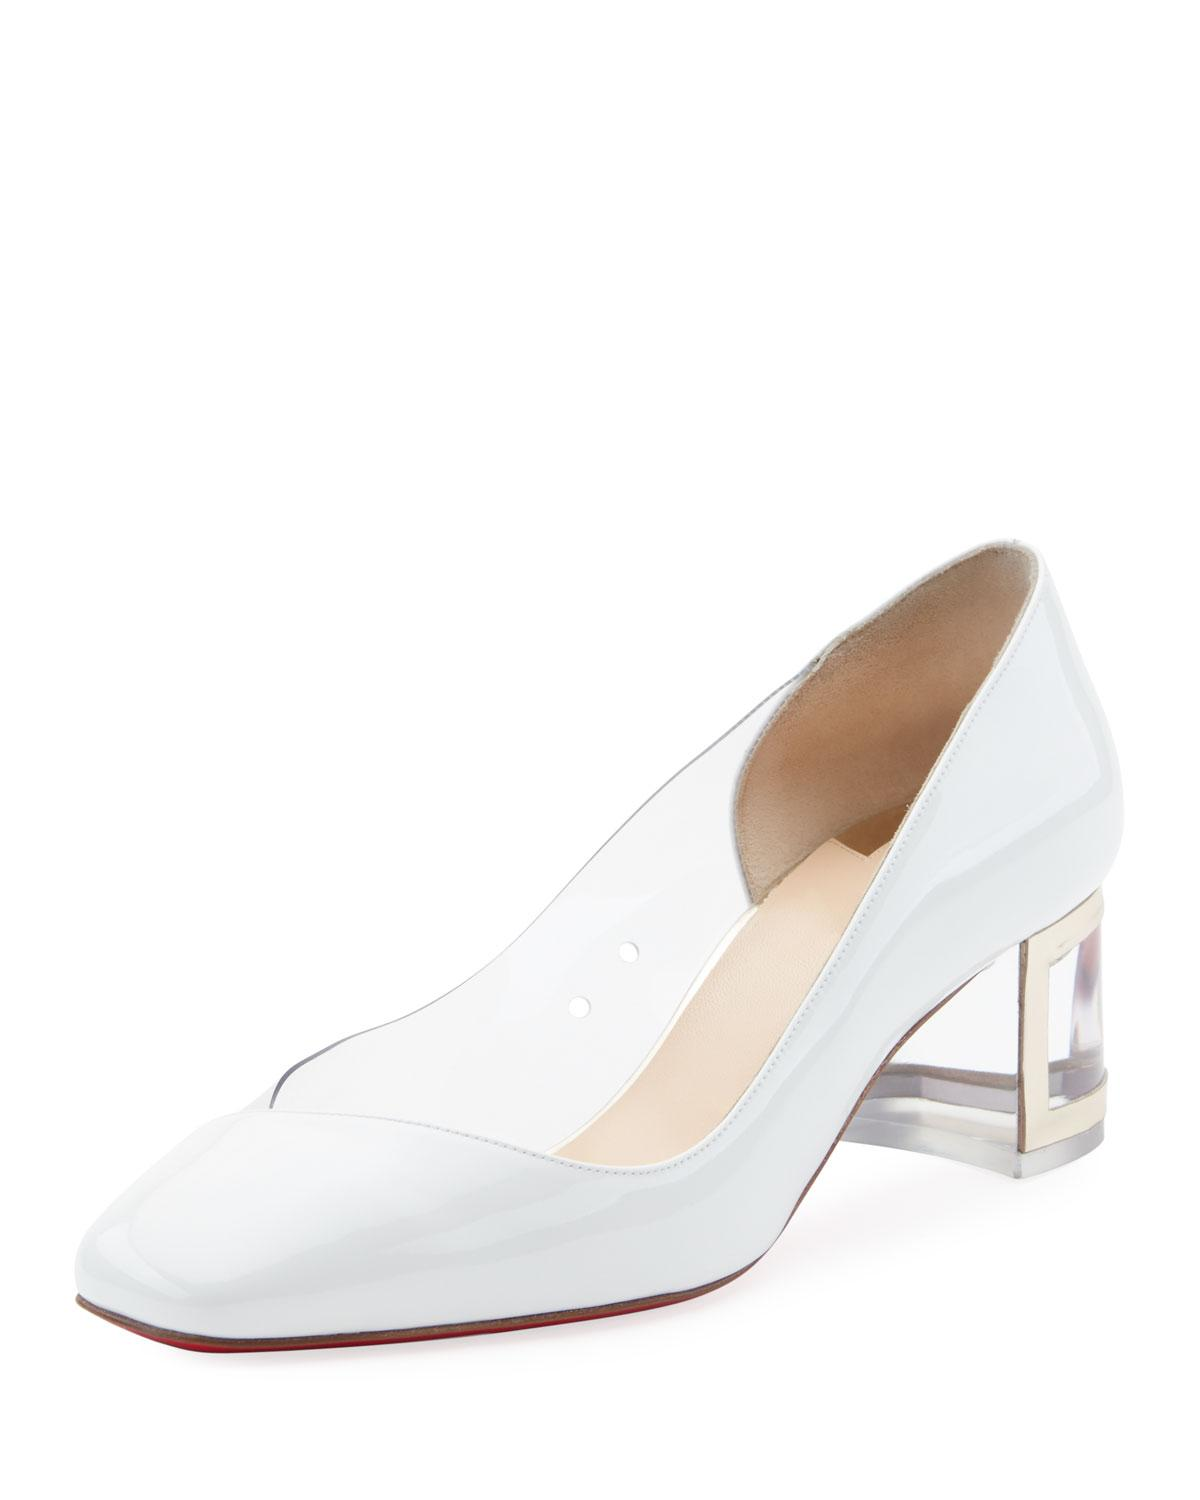 low priced 299d6 04b3e Provisore 55Mm Red Sole Pumps in White